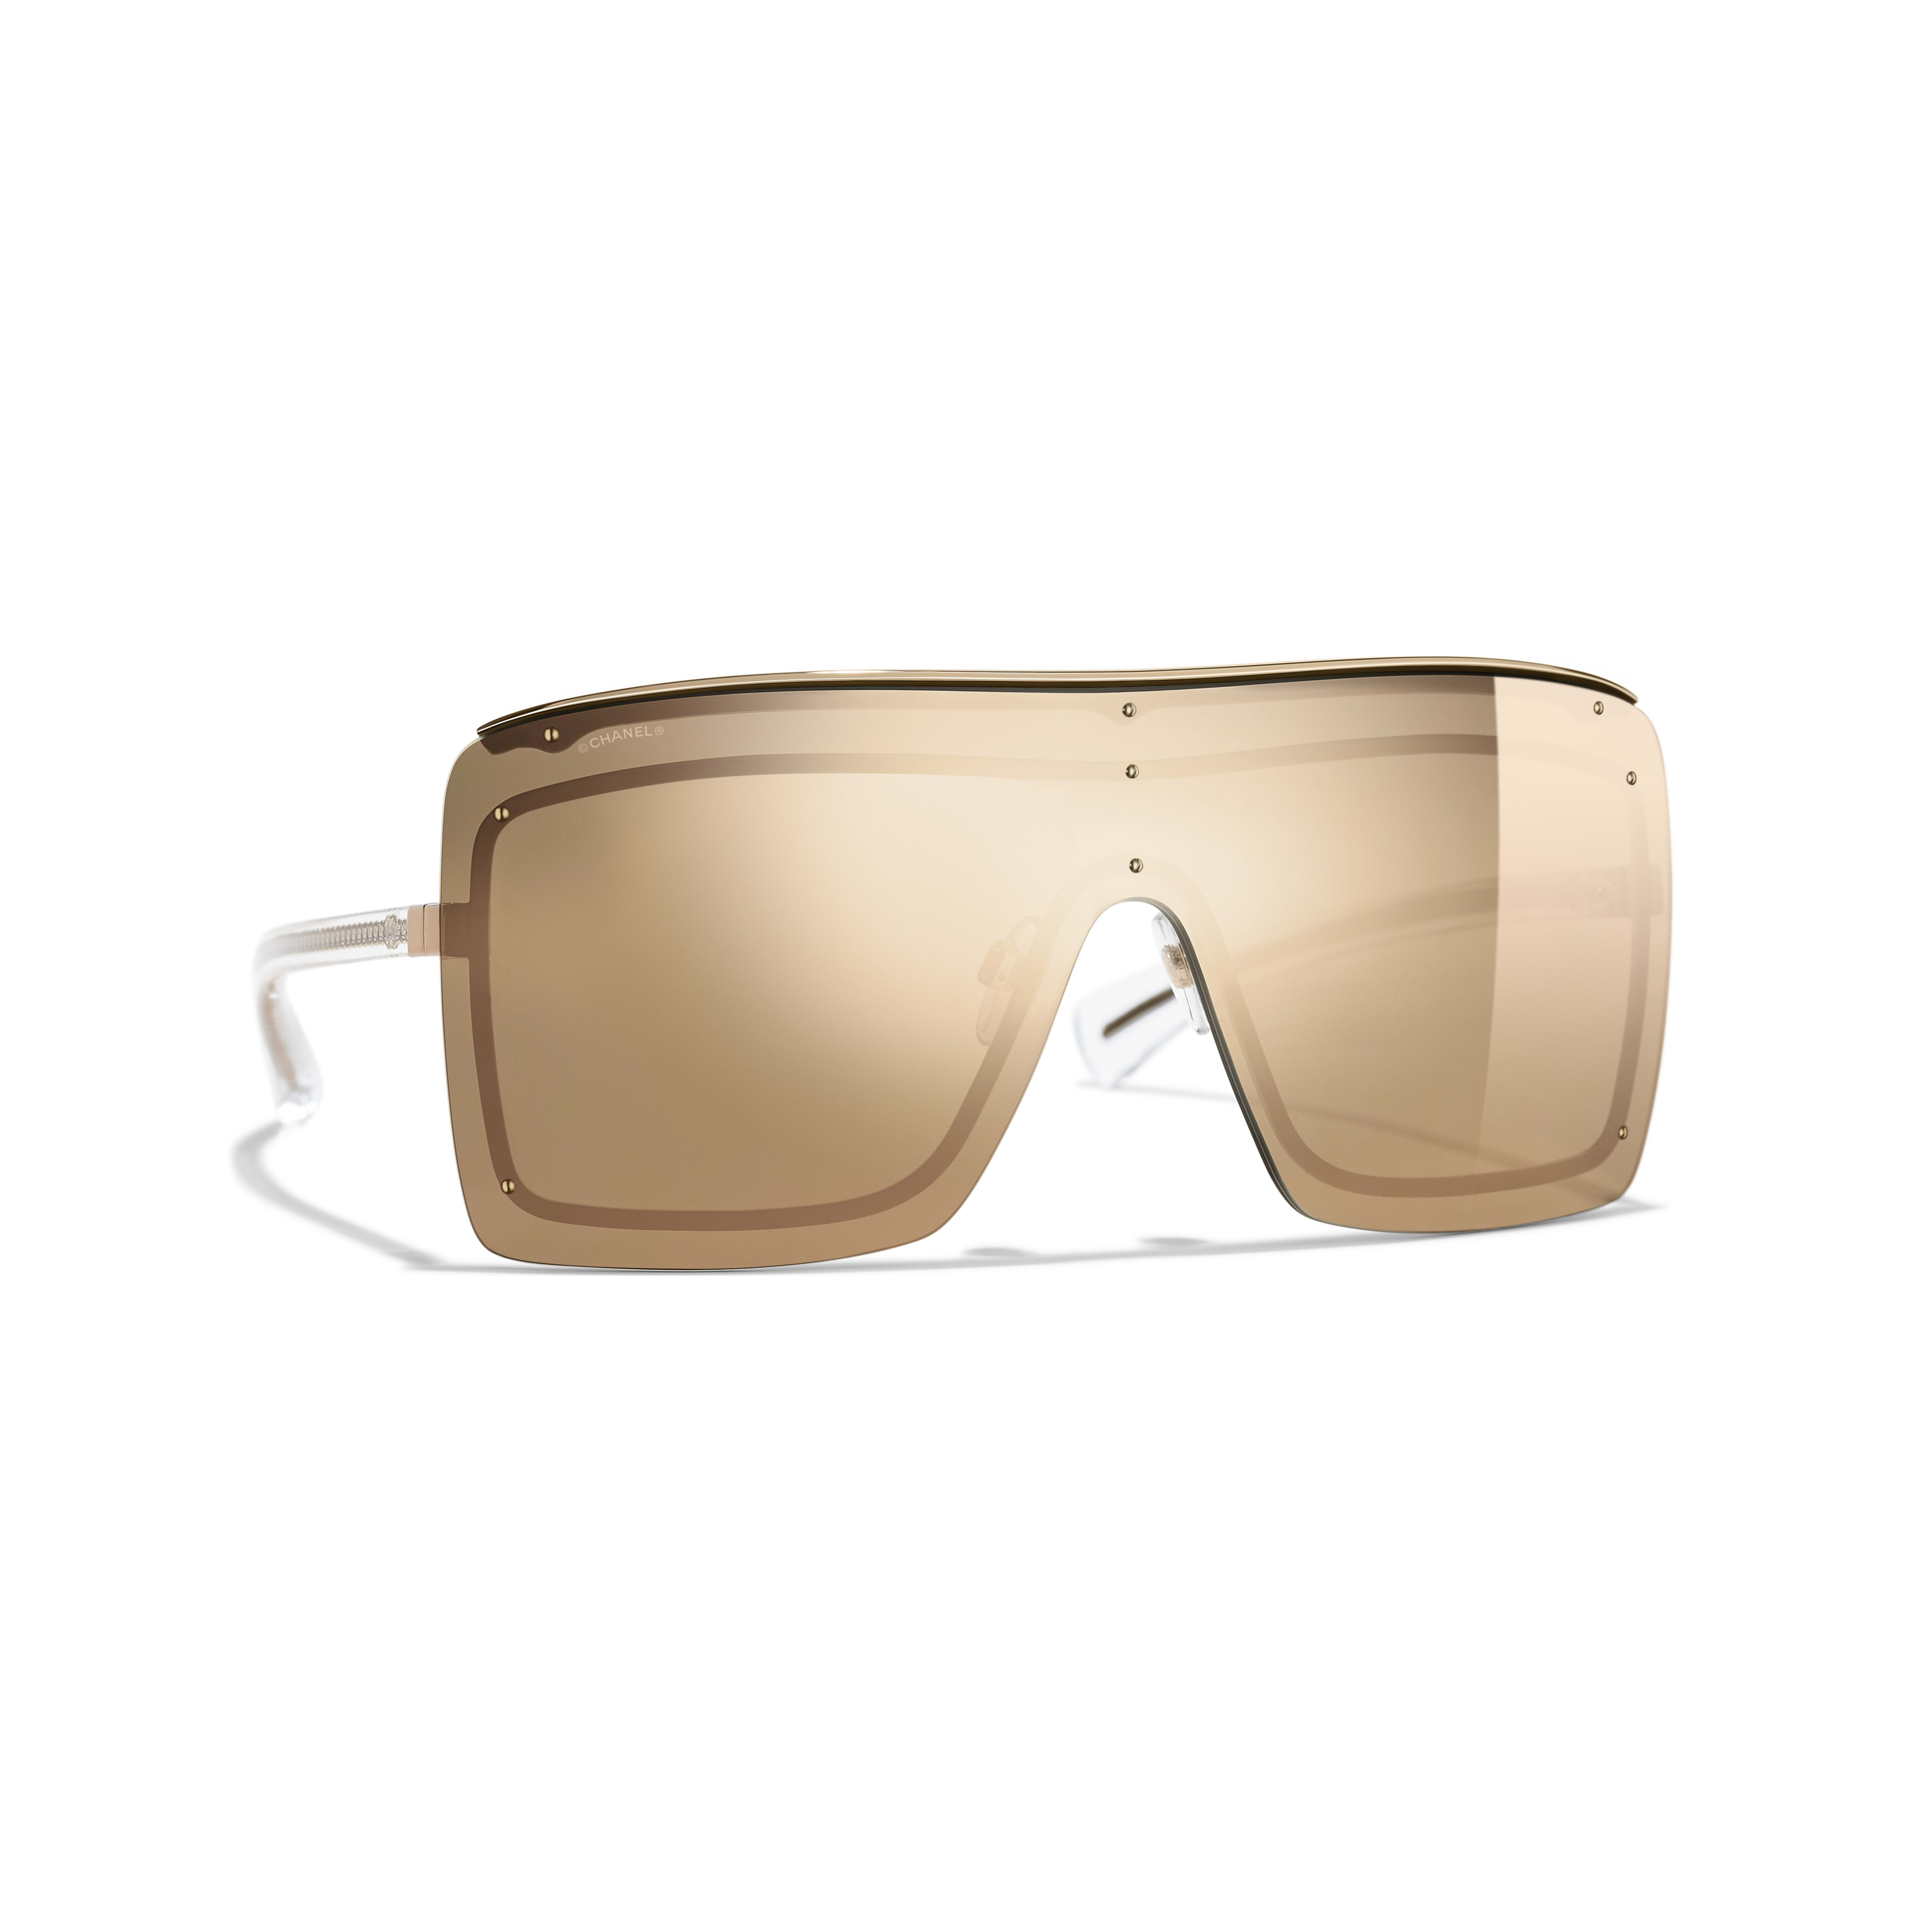 Shield Sunglasses Metal - 18-Karat Gold Lenses Gold -                                               view 1 - see full sized version